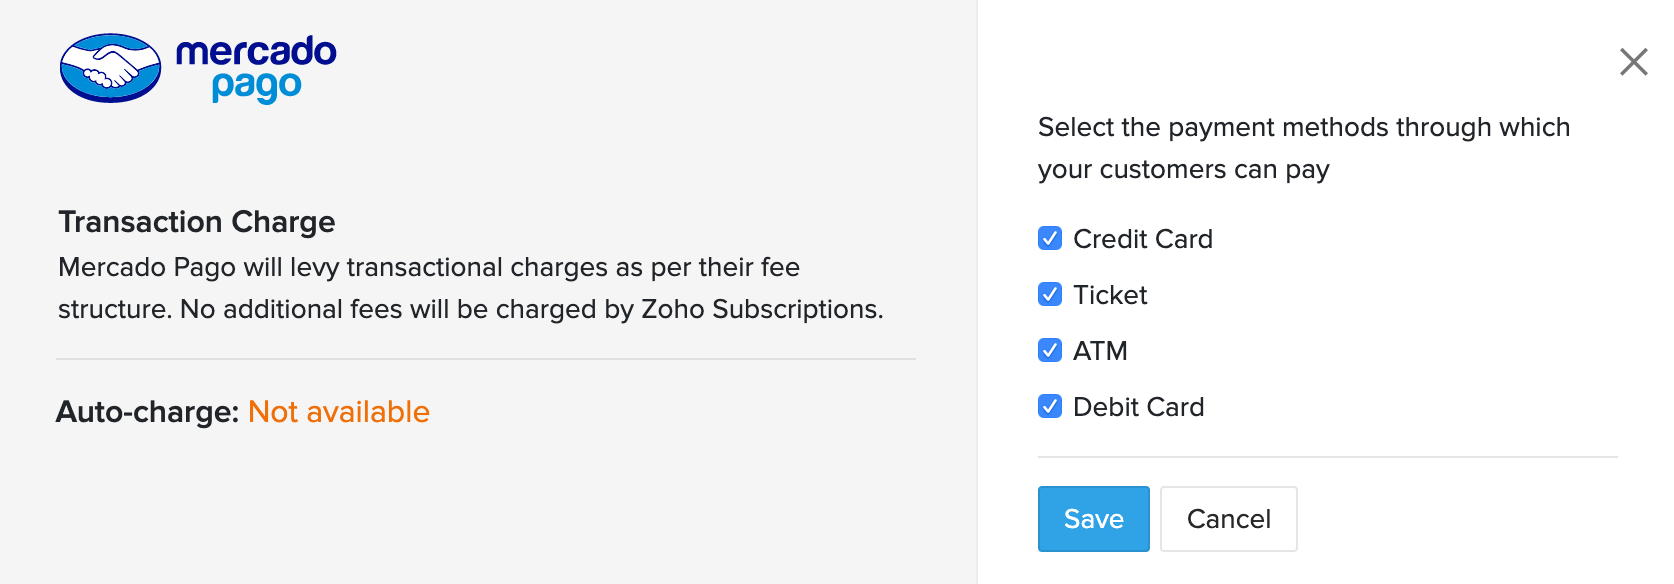 Mercado Pago Payment Options